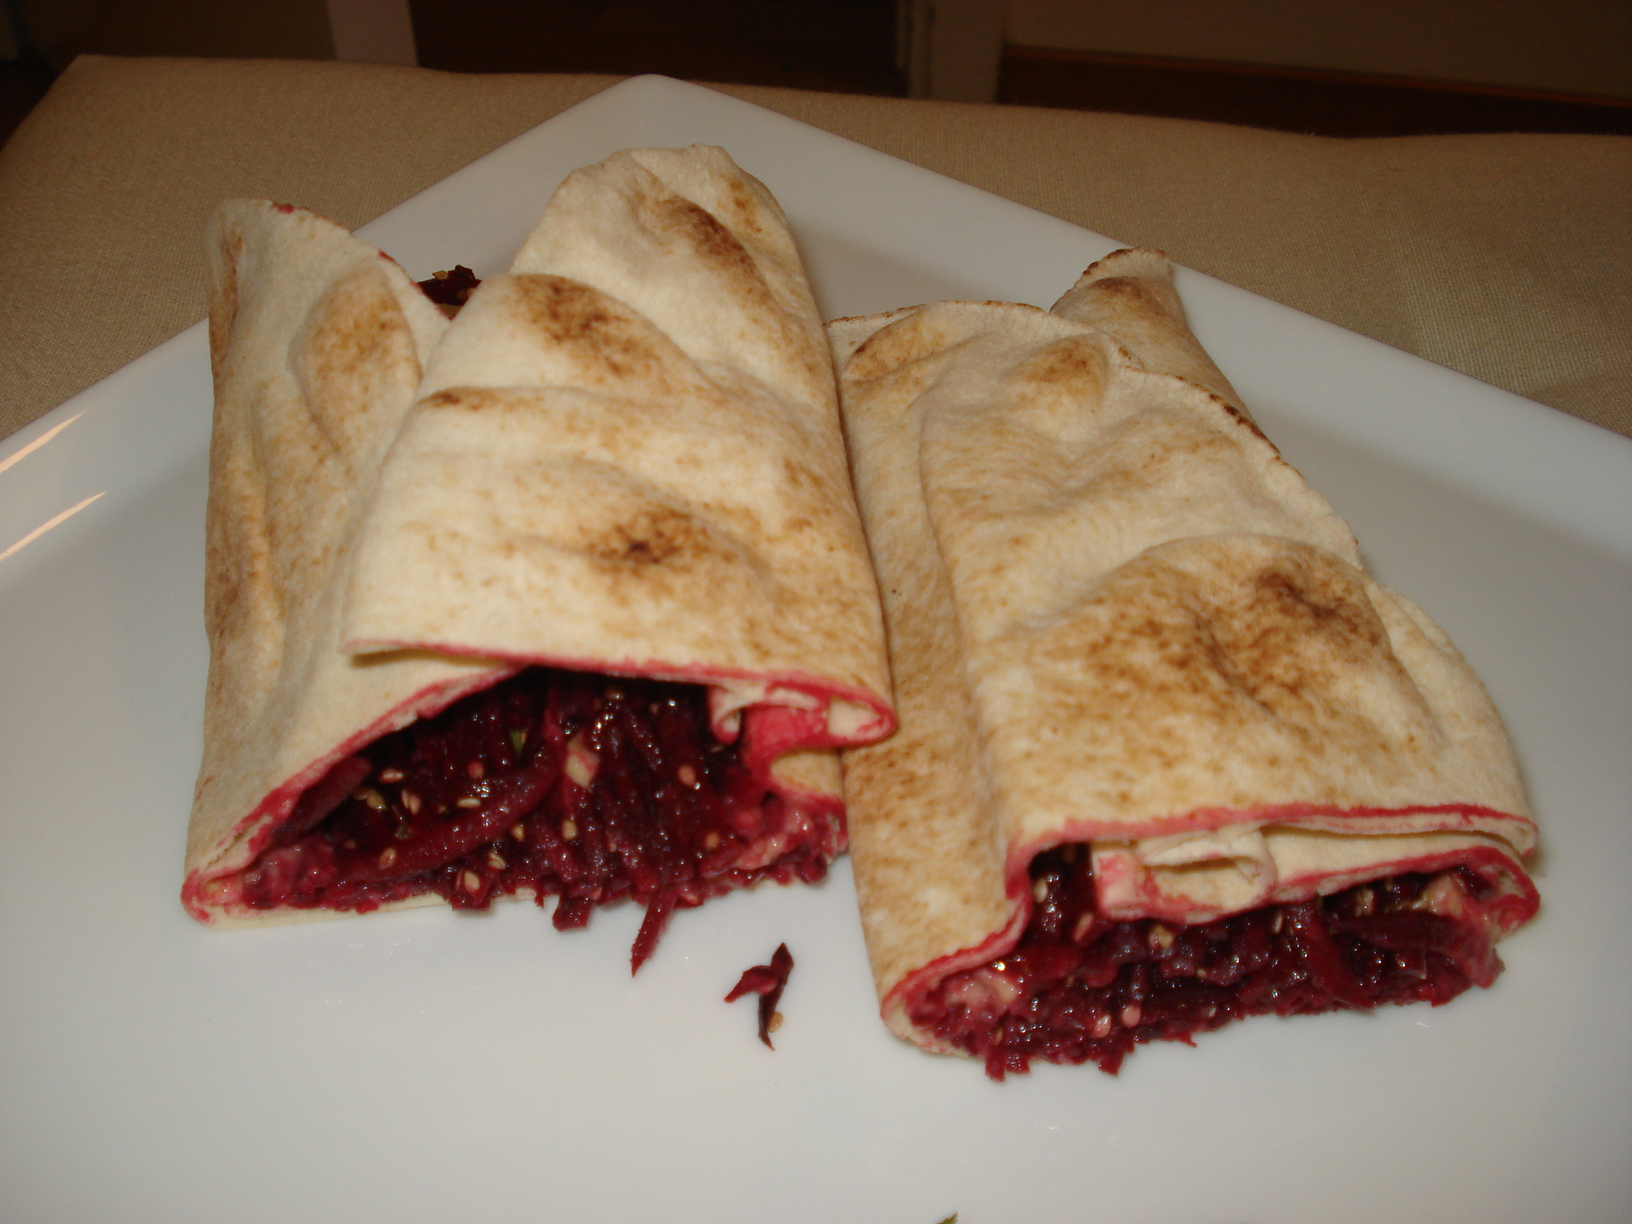 Tortilla rolls with beets and hummus